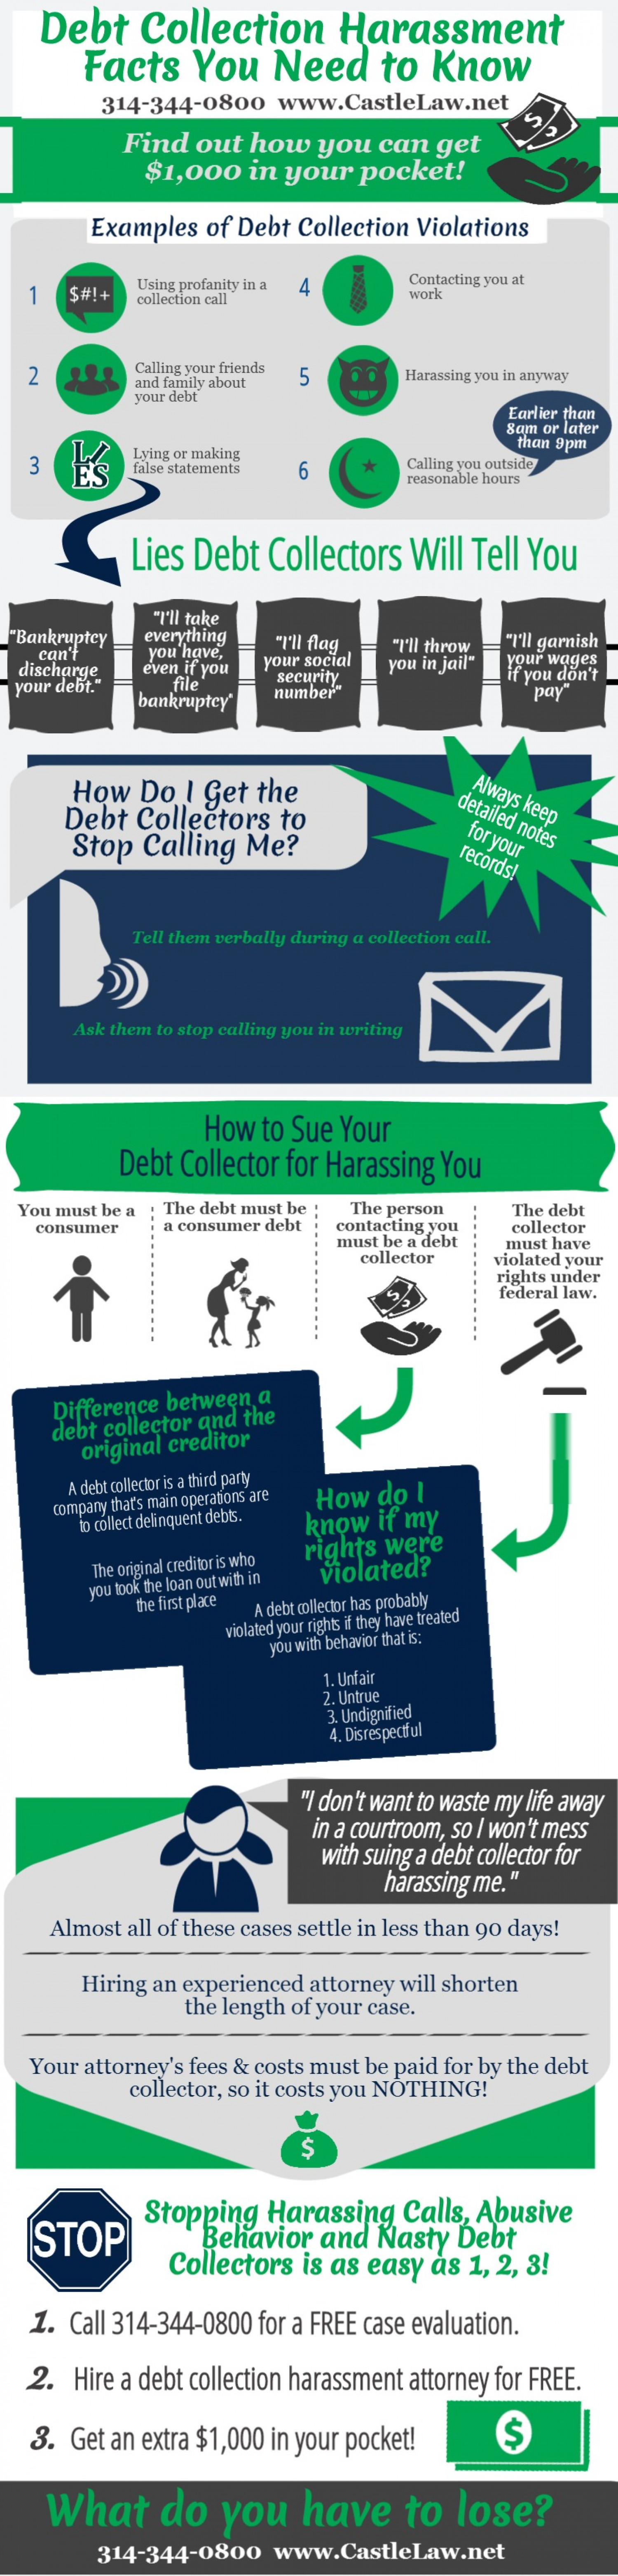 How To Sue A Harassing Debt Collector Infographic